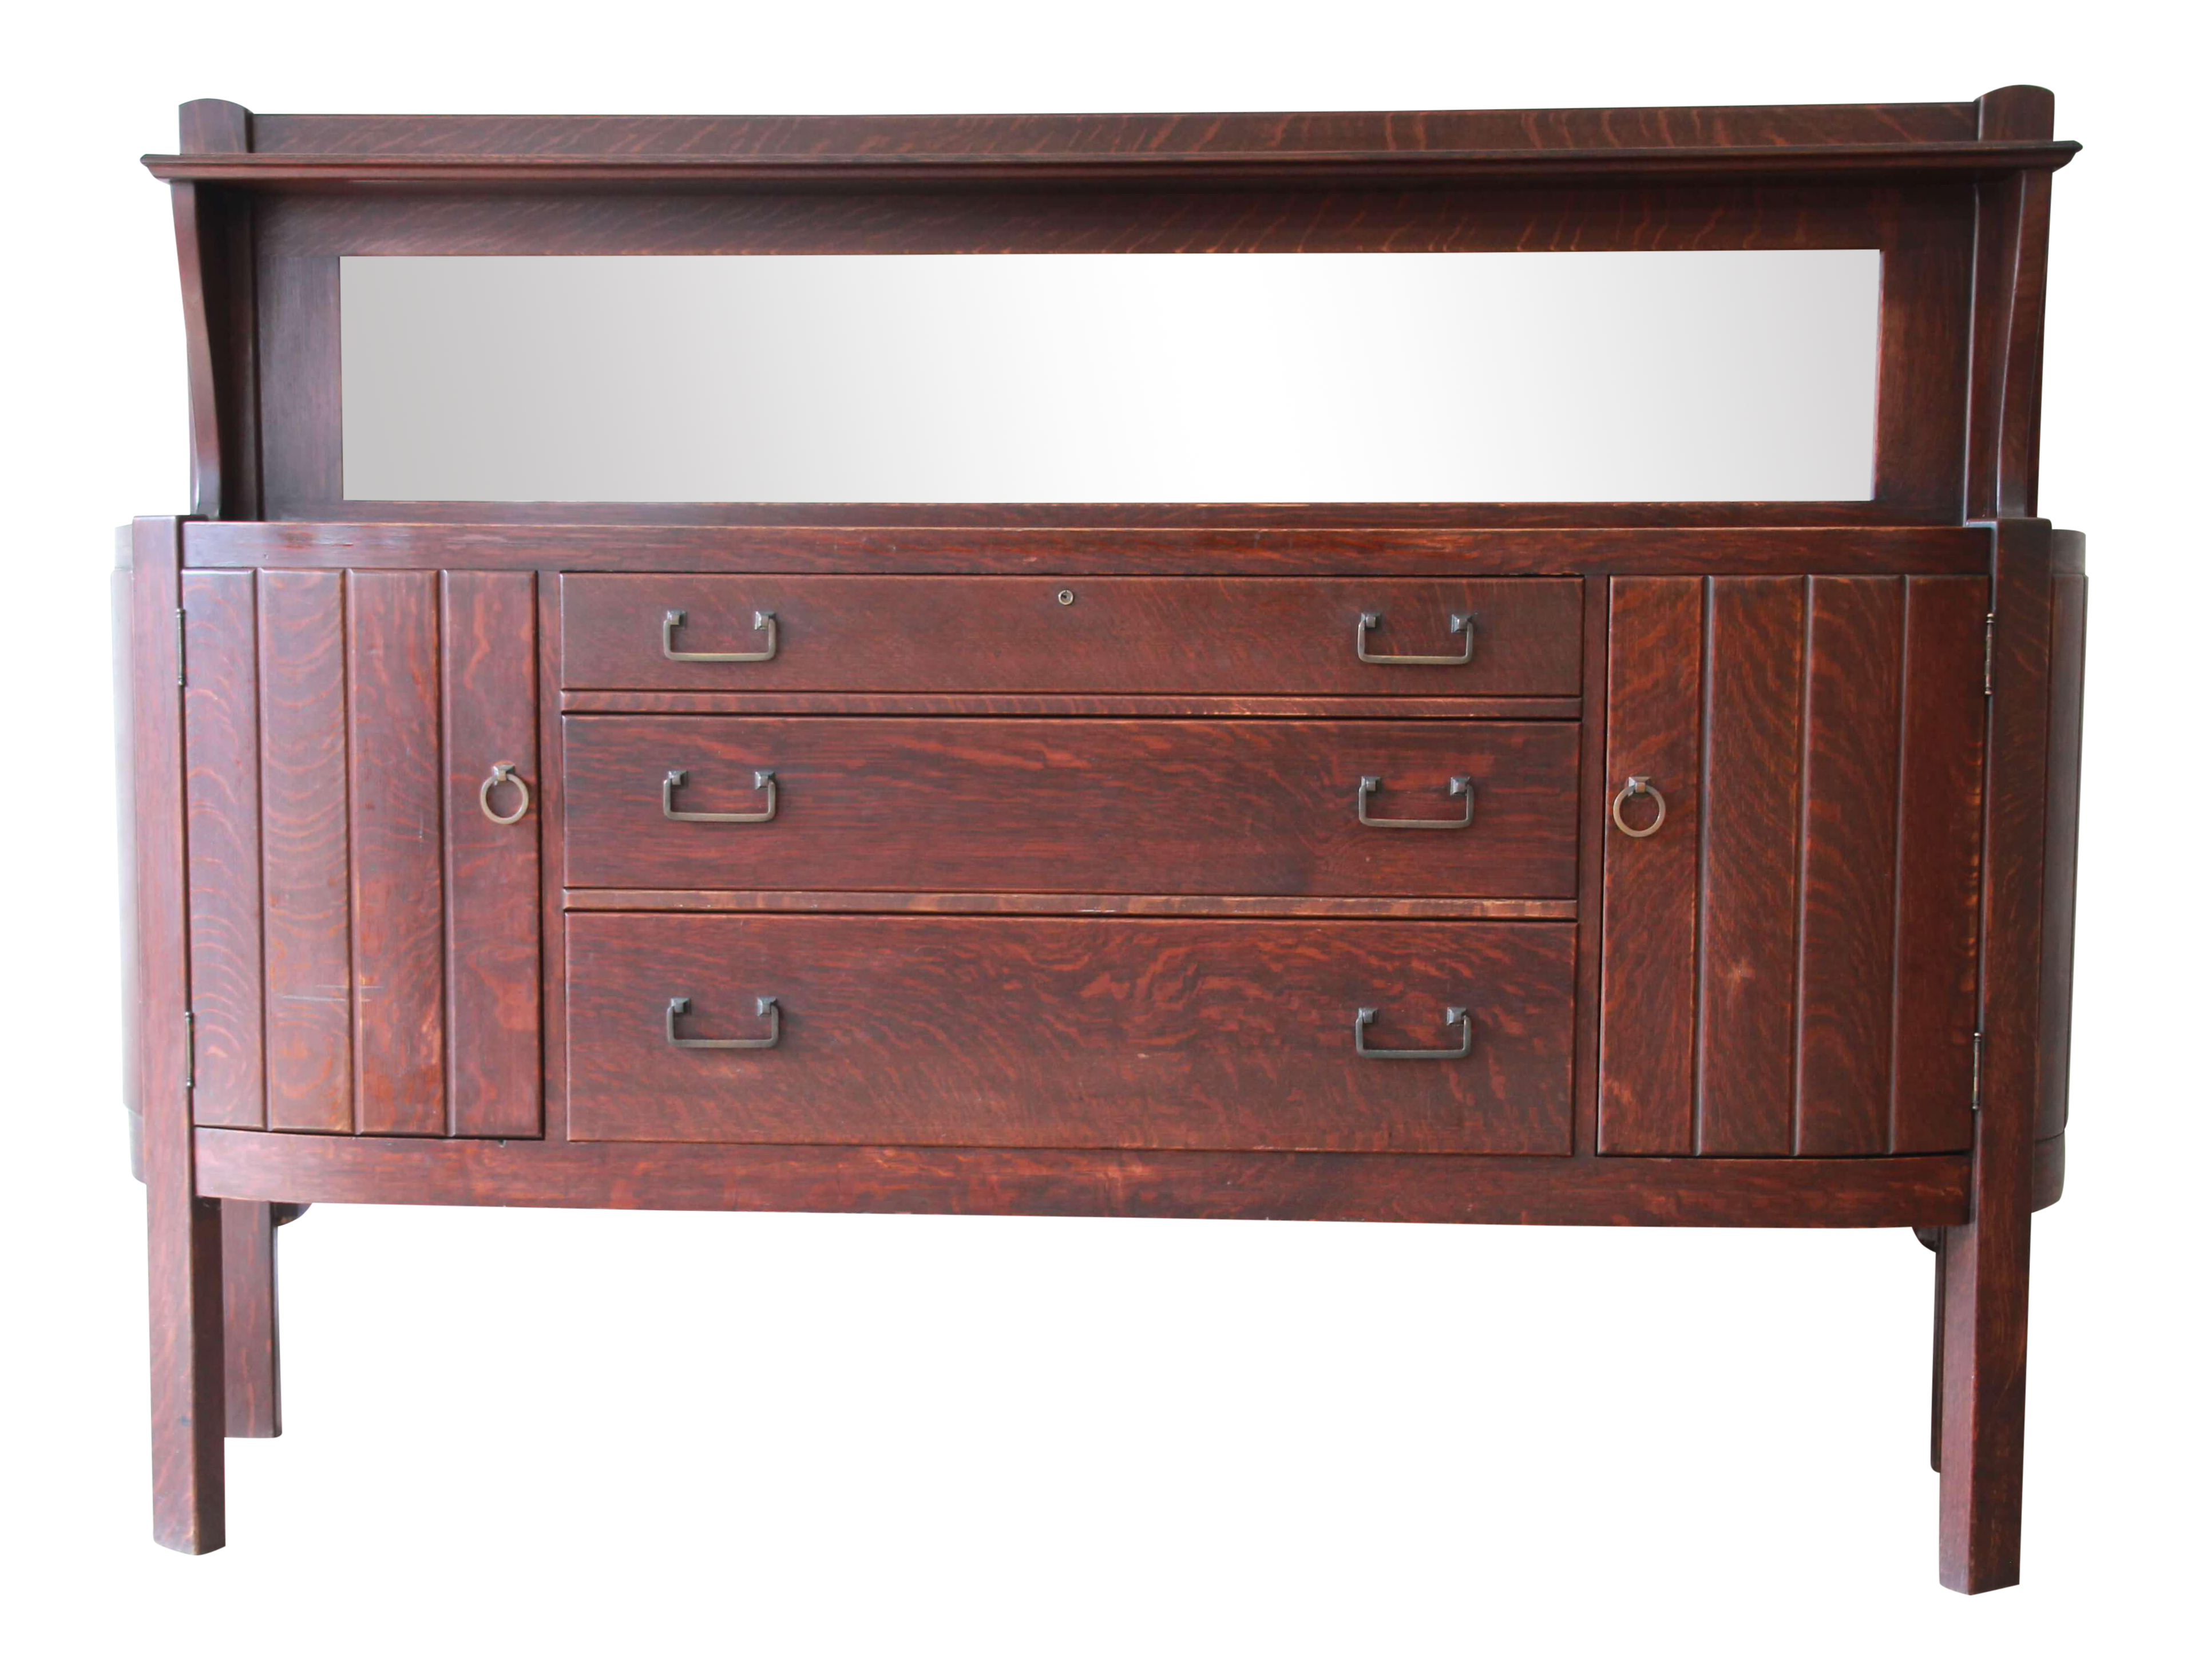 Ordinaire Antique Mission Oak Sideboard By Grand Rapids Chair Co., Circa 1910 For Sale